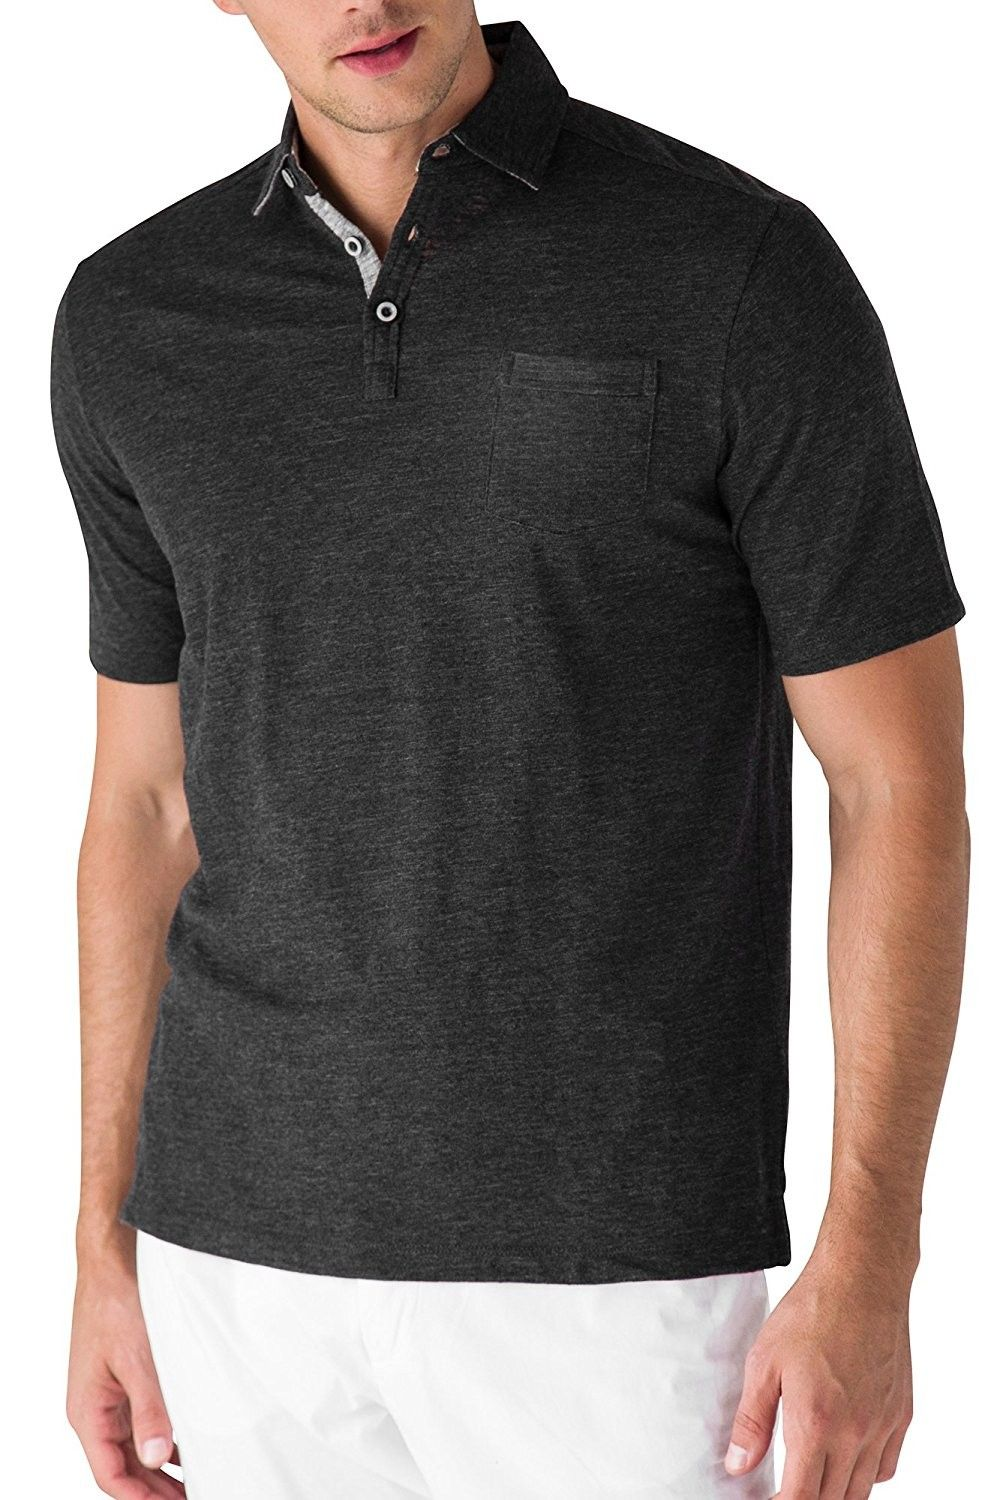 Men Regular Fit Cotton Polo Shirts Classic Short Sleeve Polo Black